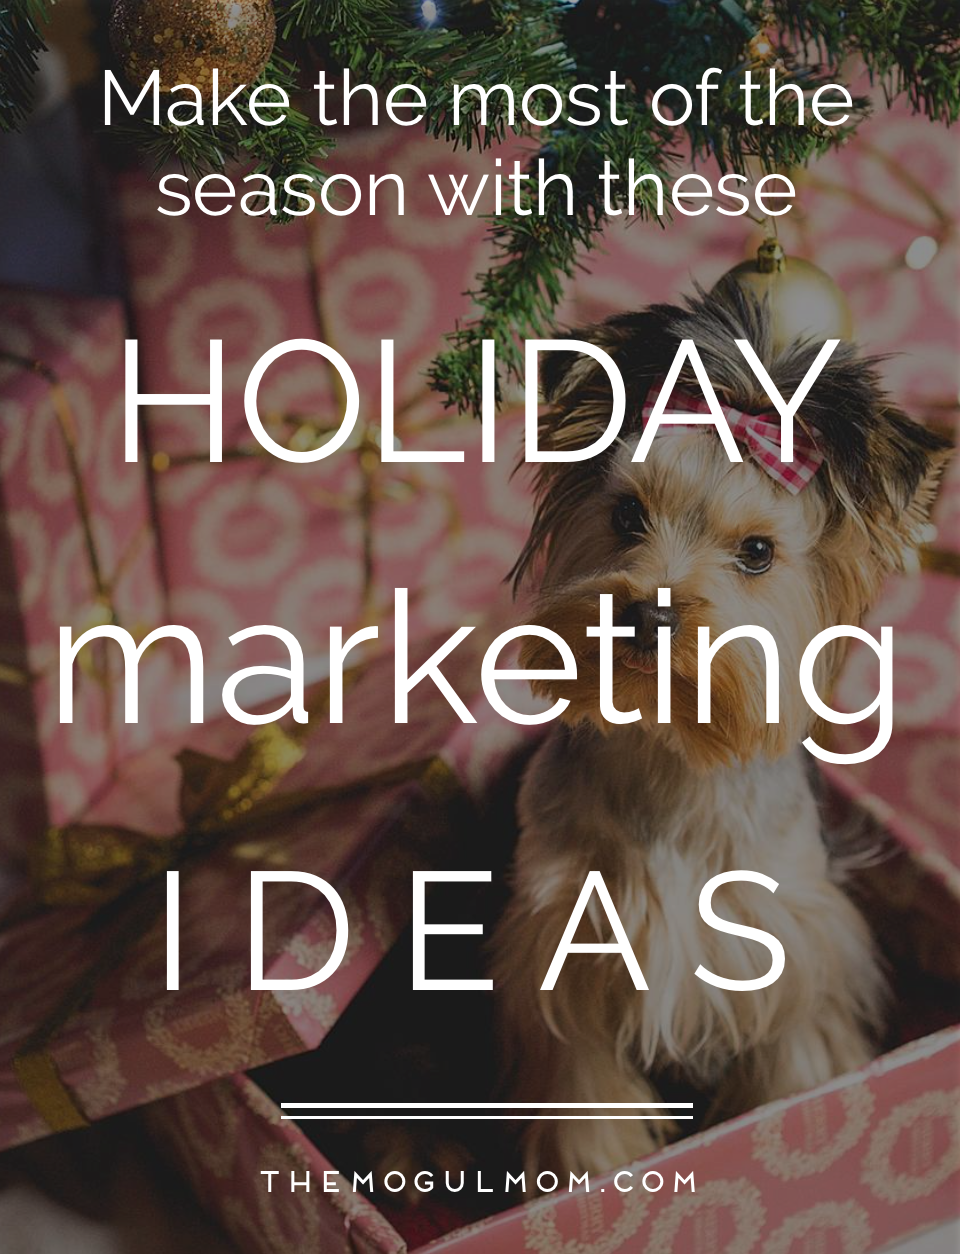 5 Holiday Marketing Ideas: Make the Most of the Selling Season